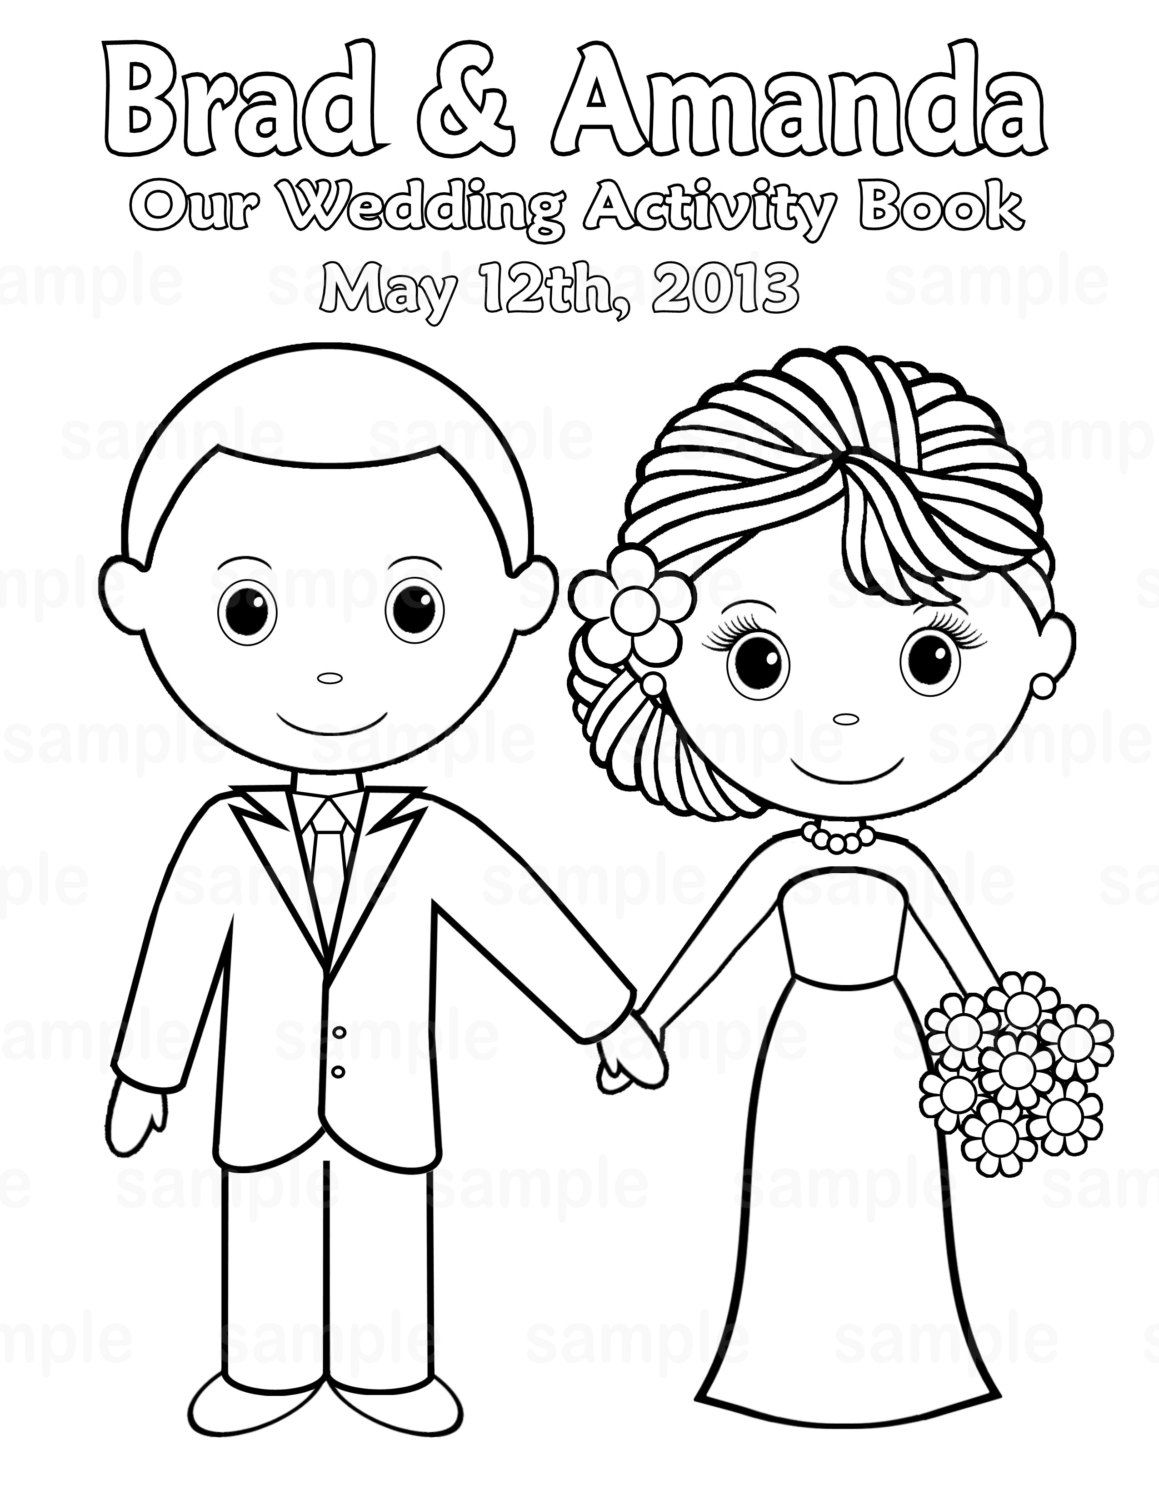 Printable Personalized Wedding Coloring Activity Book Favor Kids 8 5 X 11 Pdf Or Jpeg Template Wedding With Kids Wedding Coloring Pages Wedding Activities